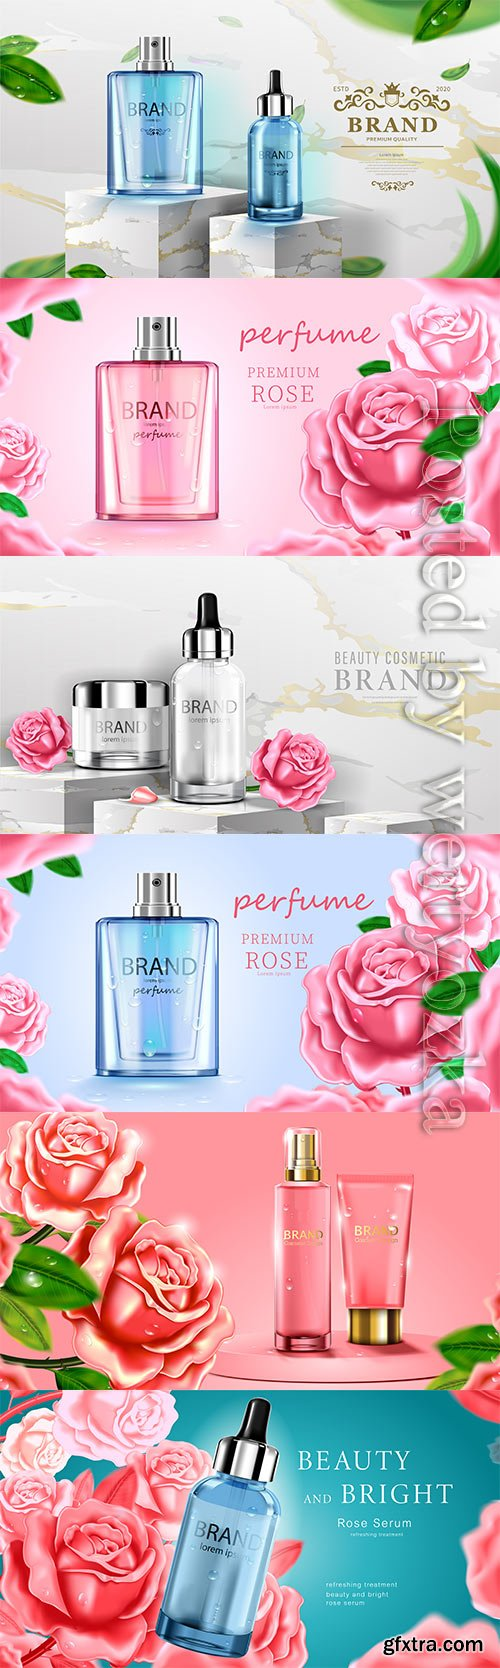 Luxury cosmetic bottle package skin care cream, beauty cosmetic product poster